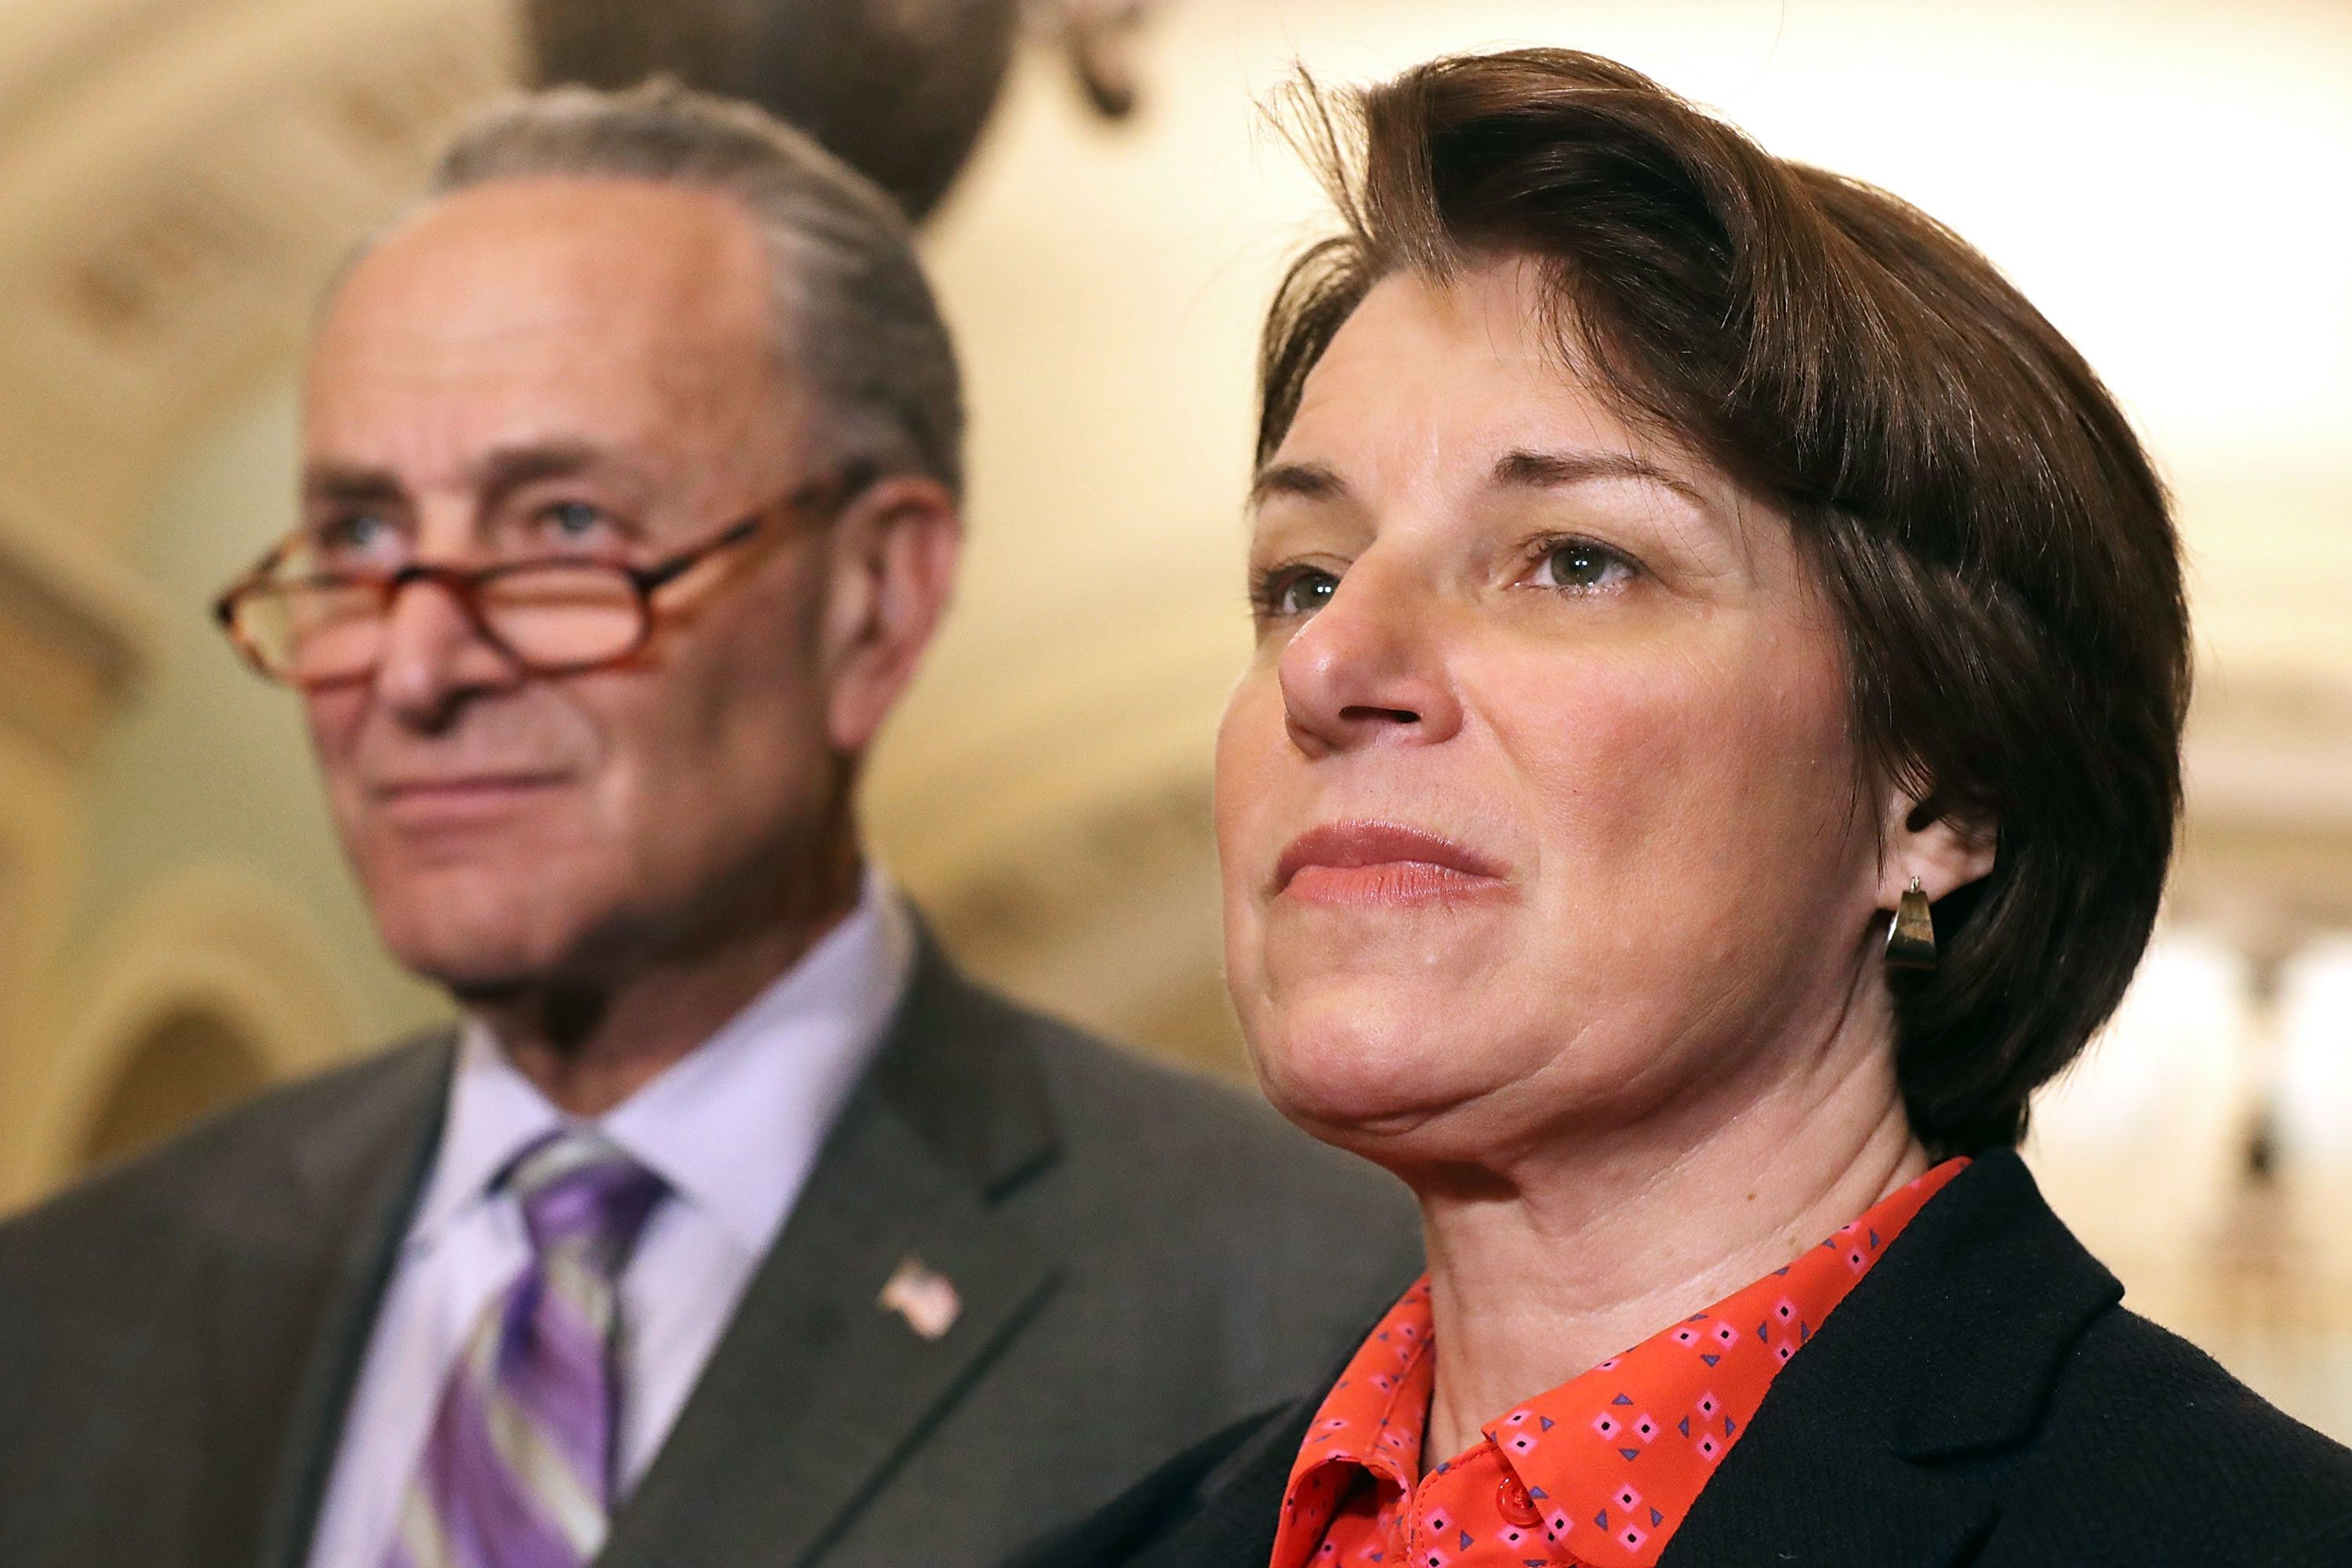 WASHINGTON, DC - MAY 22:  Sen. Amy Klobuchar (D-MN) (R) talks to reporters with Senate Minority Leader Charles Schumer (D-NY) following the weekly Senate Democratic policy luncheon at the U.S. Capitol May 22, 2018 in Washington, DC. Senate Republicans and Democrats said are close to advancing legislation that would reform the reporting process for victims of sexual harassment and would make members of Congress personally liable for any settlements.  (Photo by Chip Somodevilla/Getty Images)